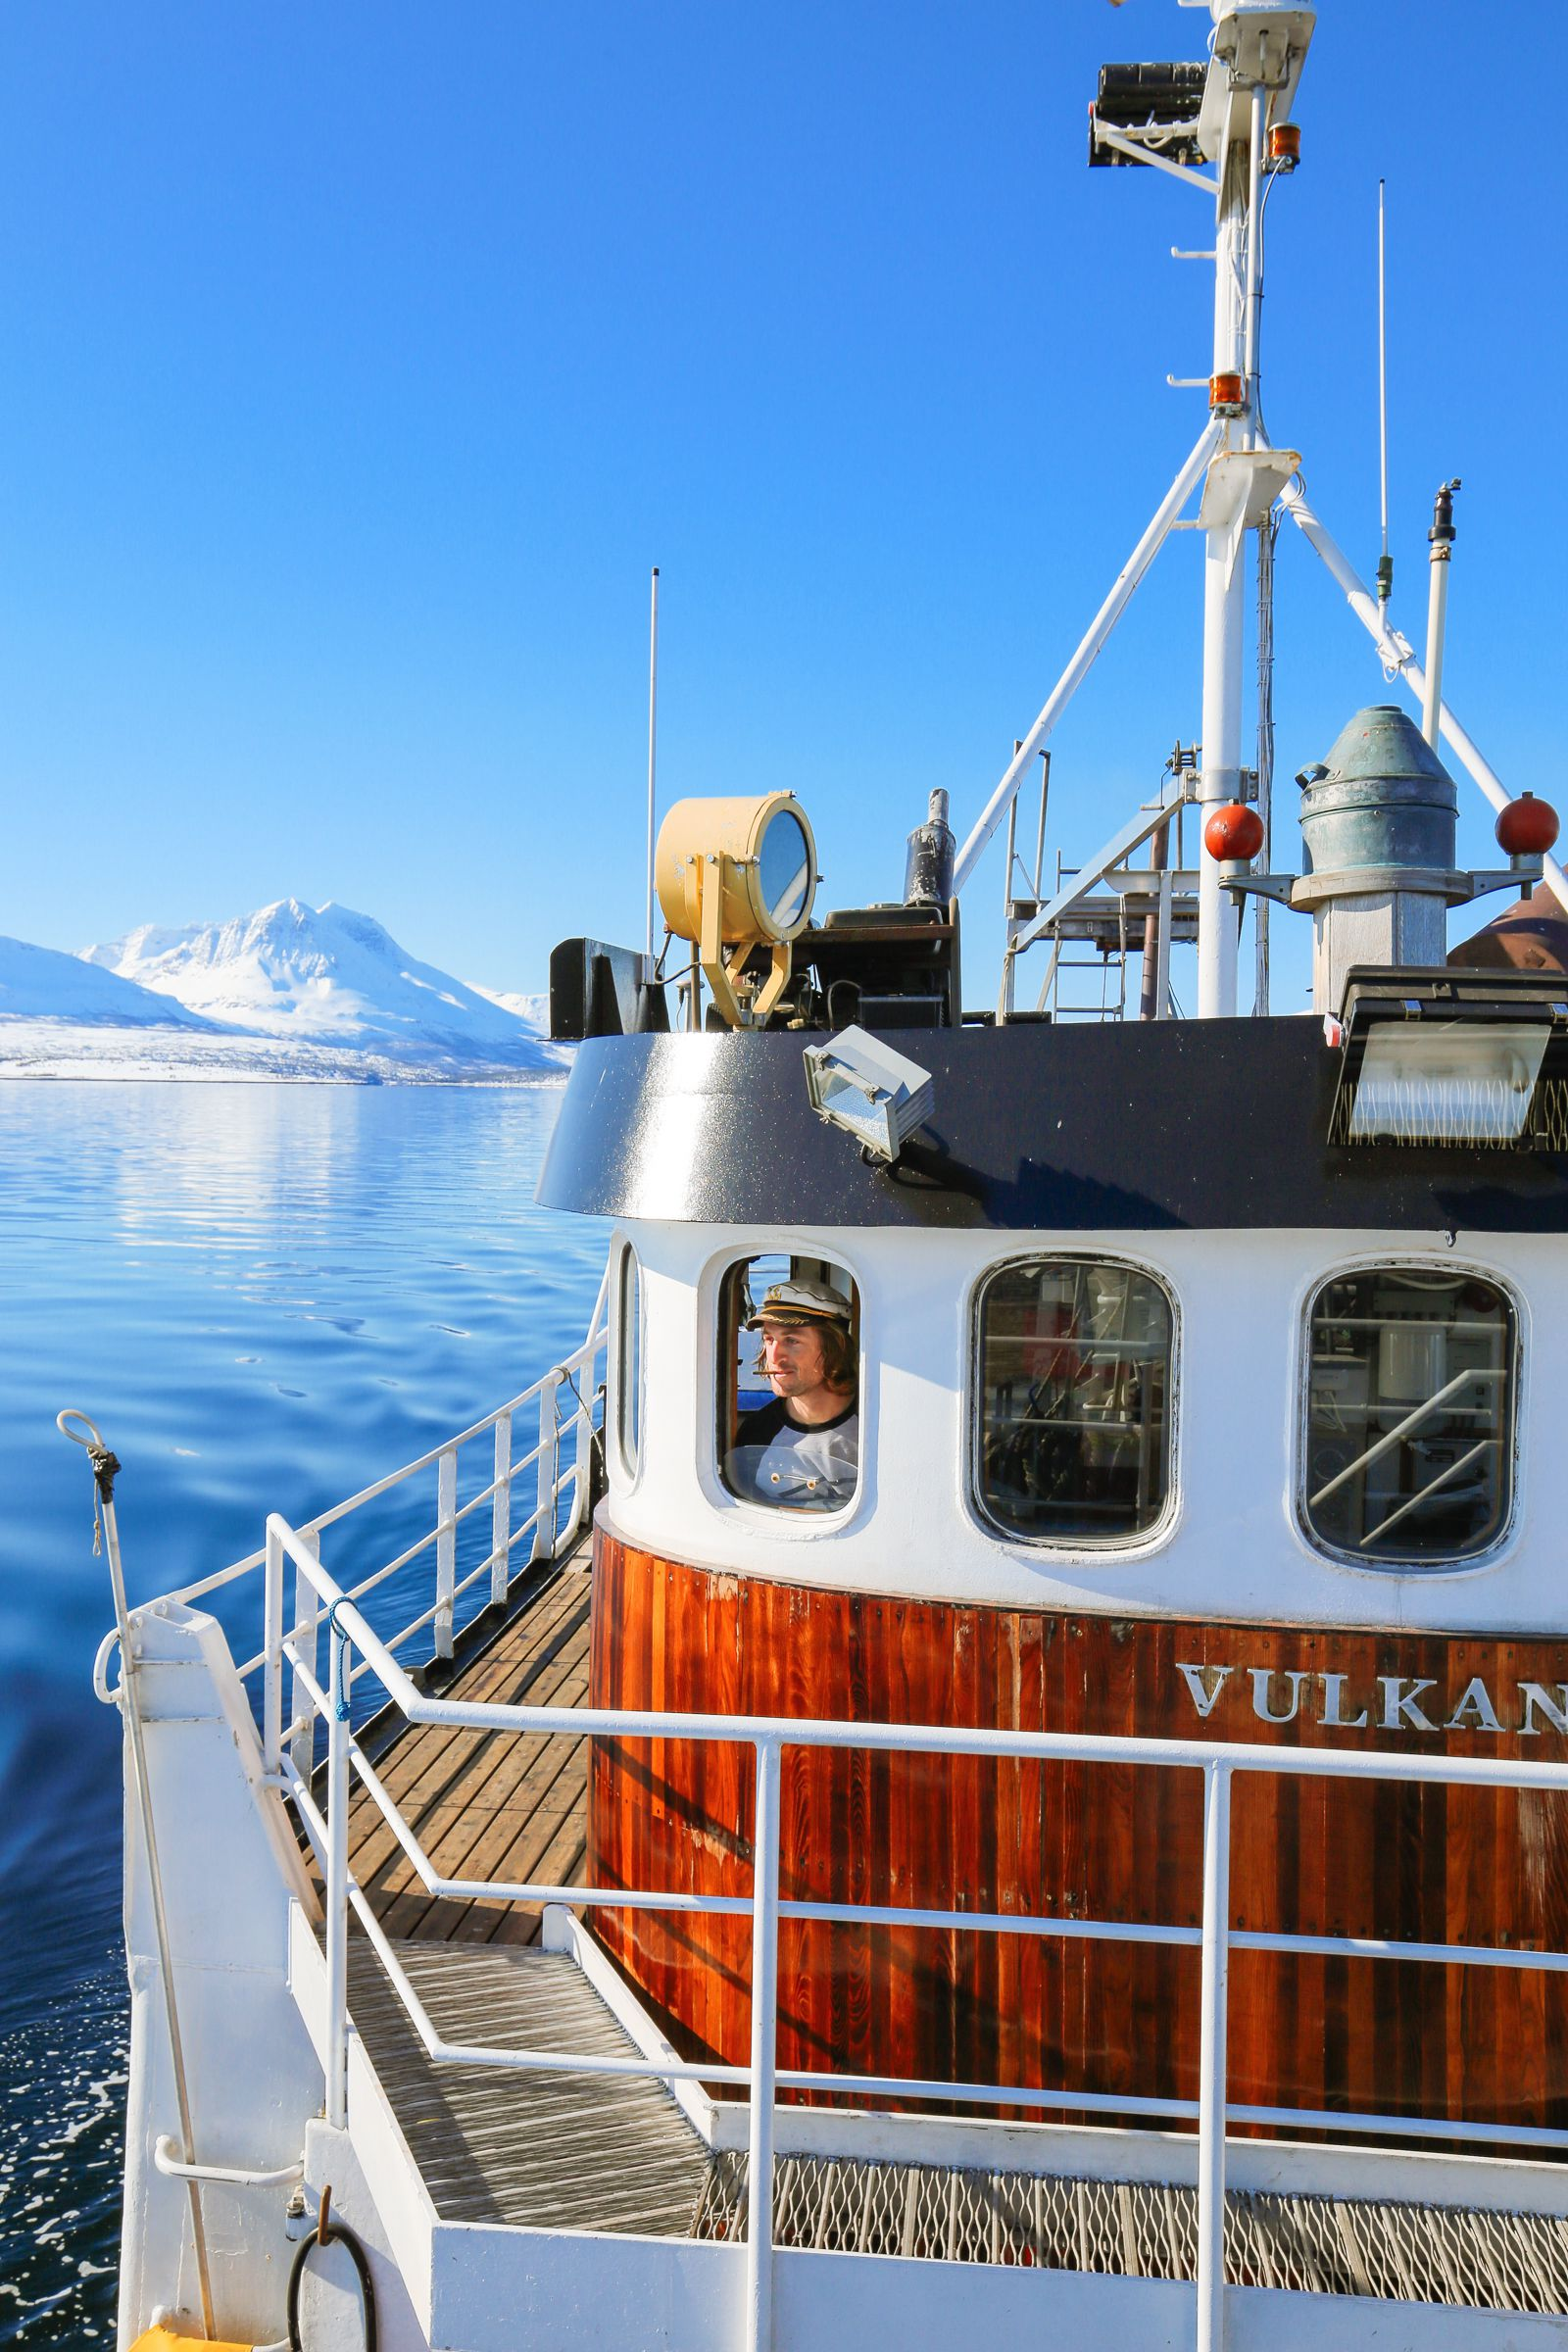 Visiting The Artic Circle in Tromso and Sommaroy in Norway, Europe. Northern Lights, Snow Mountains, Seaside (25) (8)